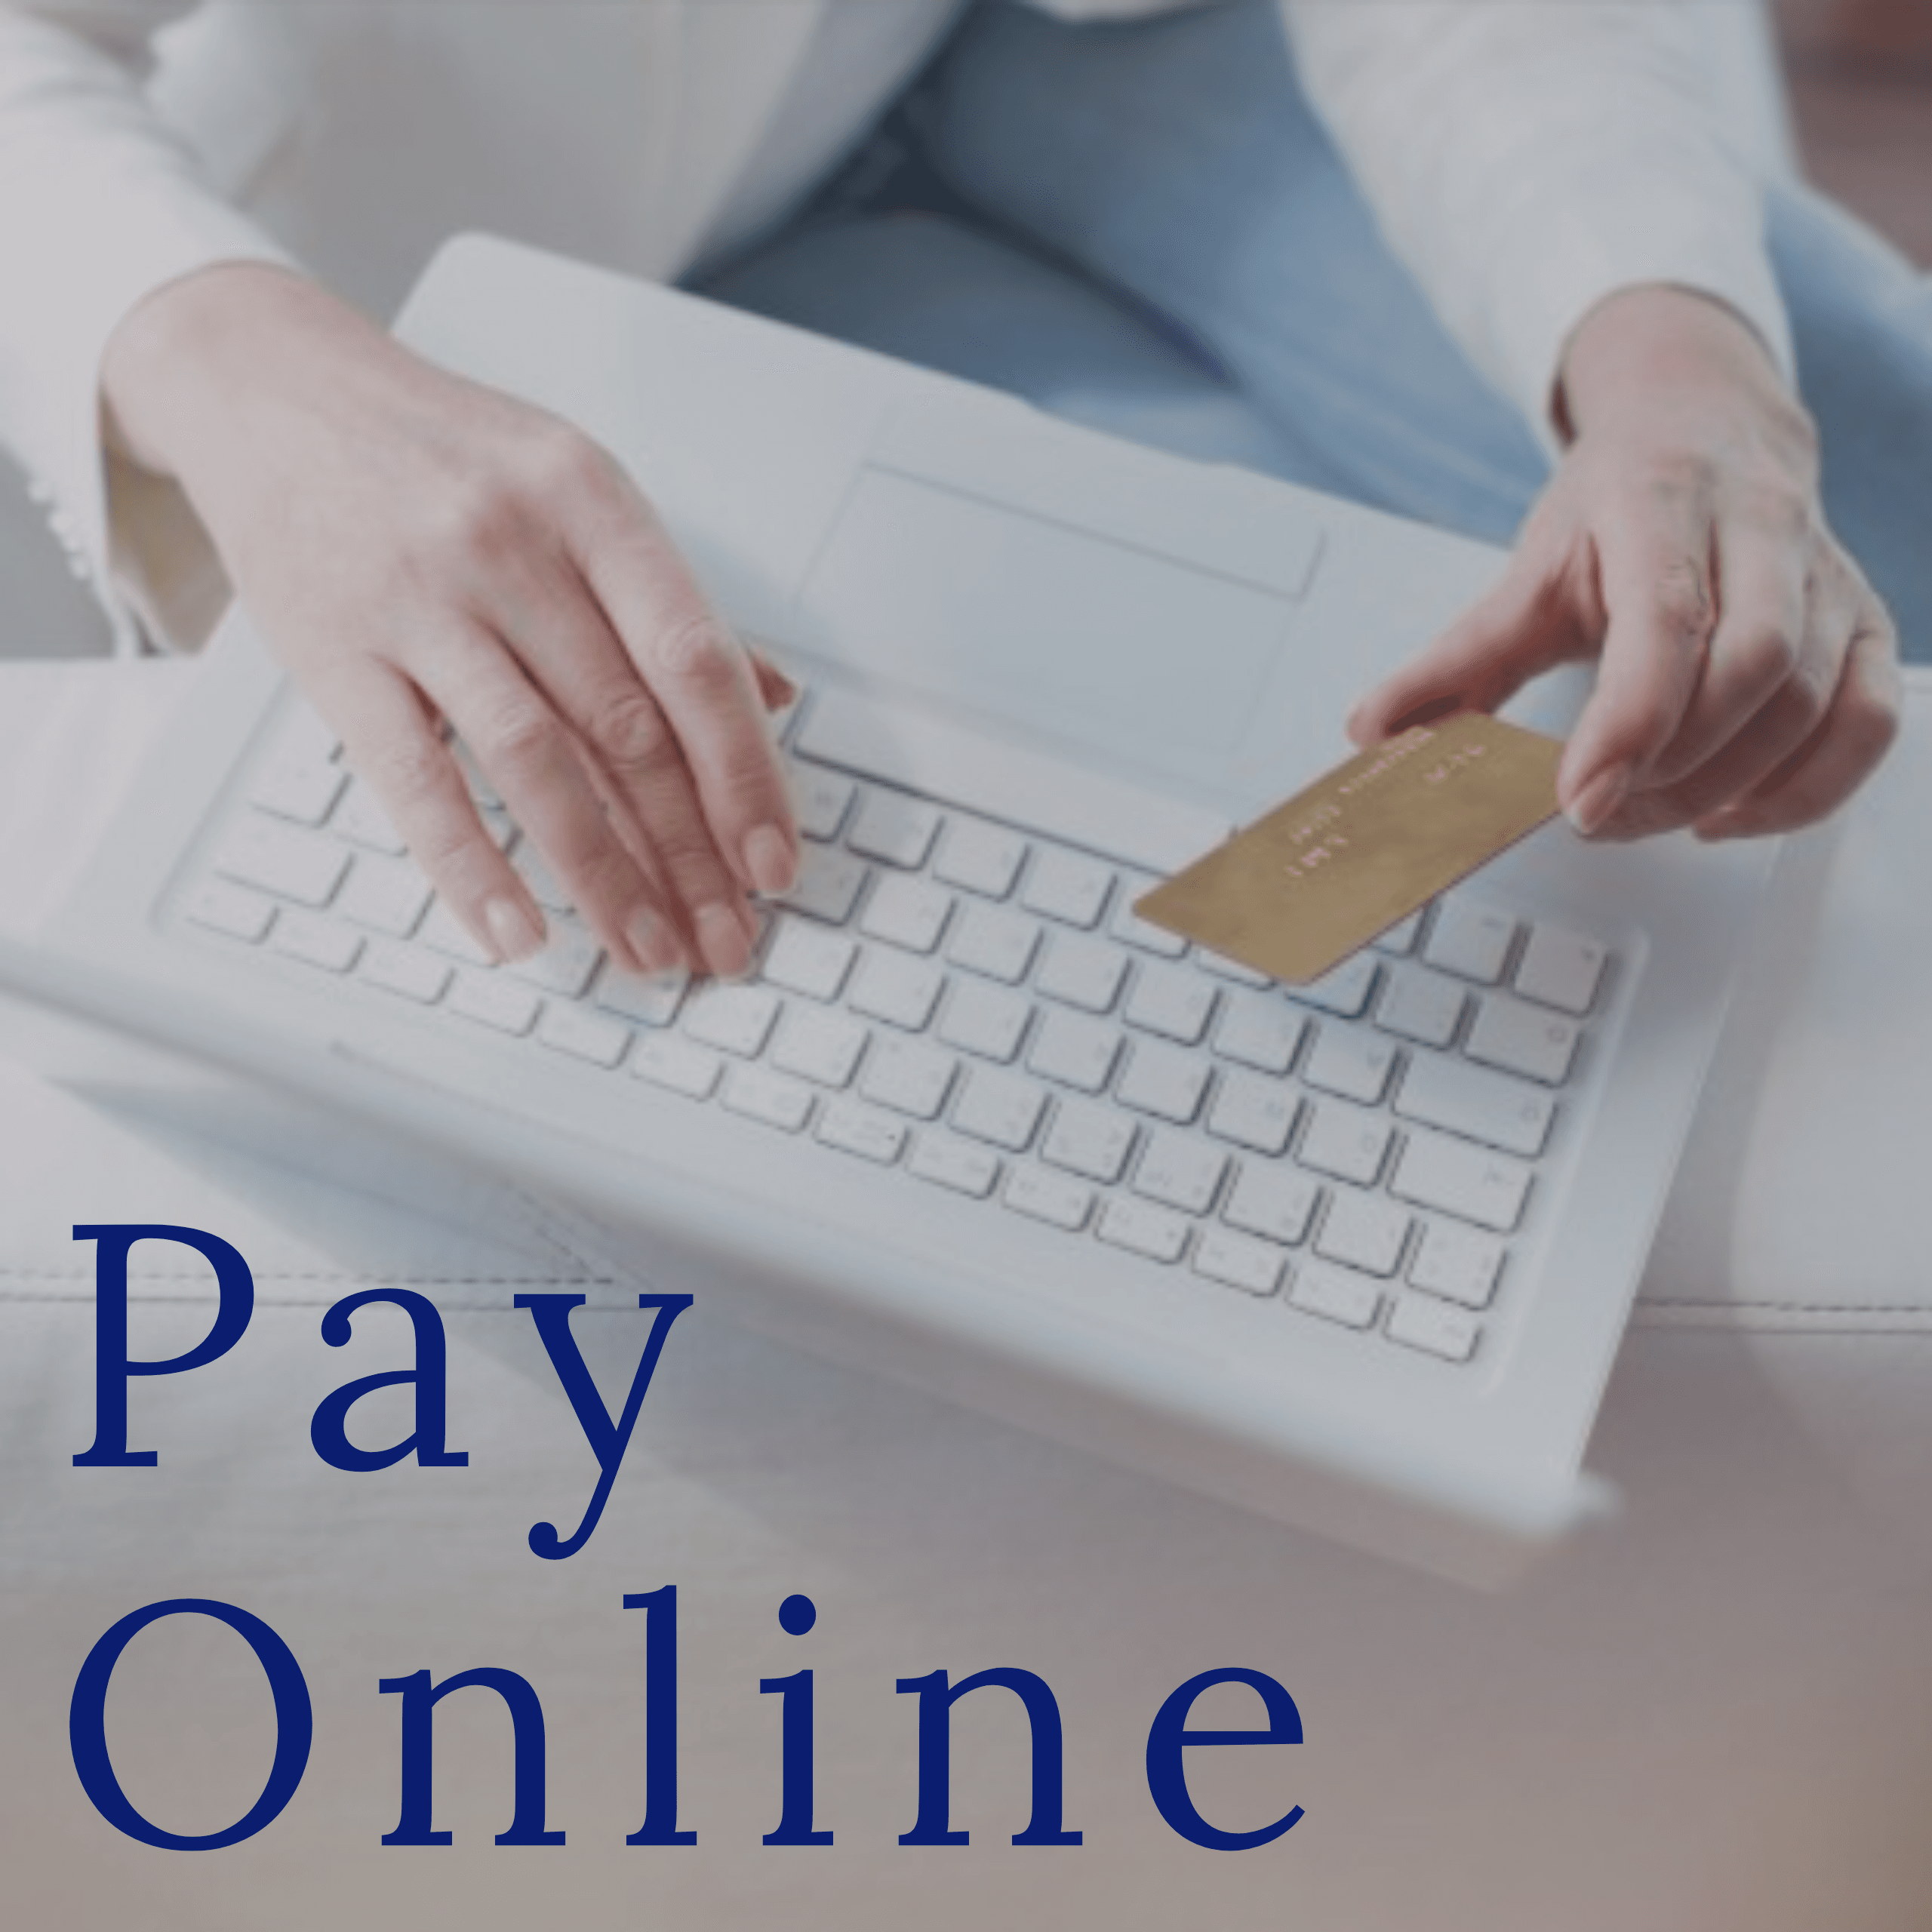 DMC Pay Online Opens in new window